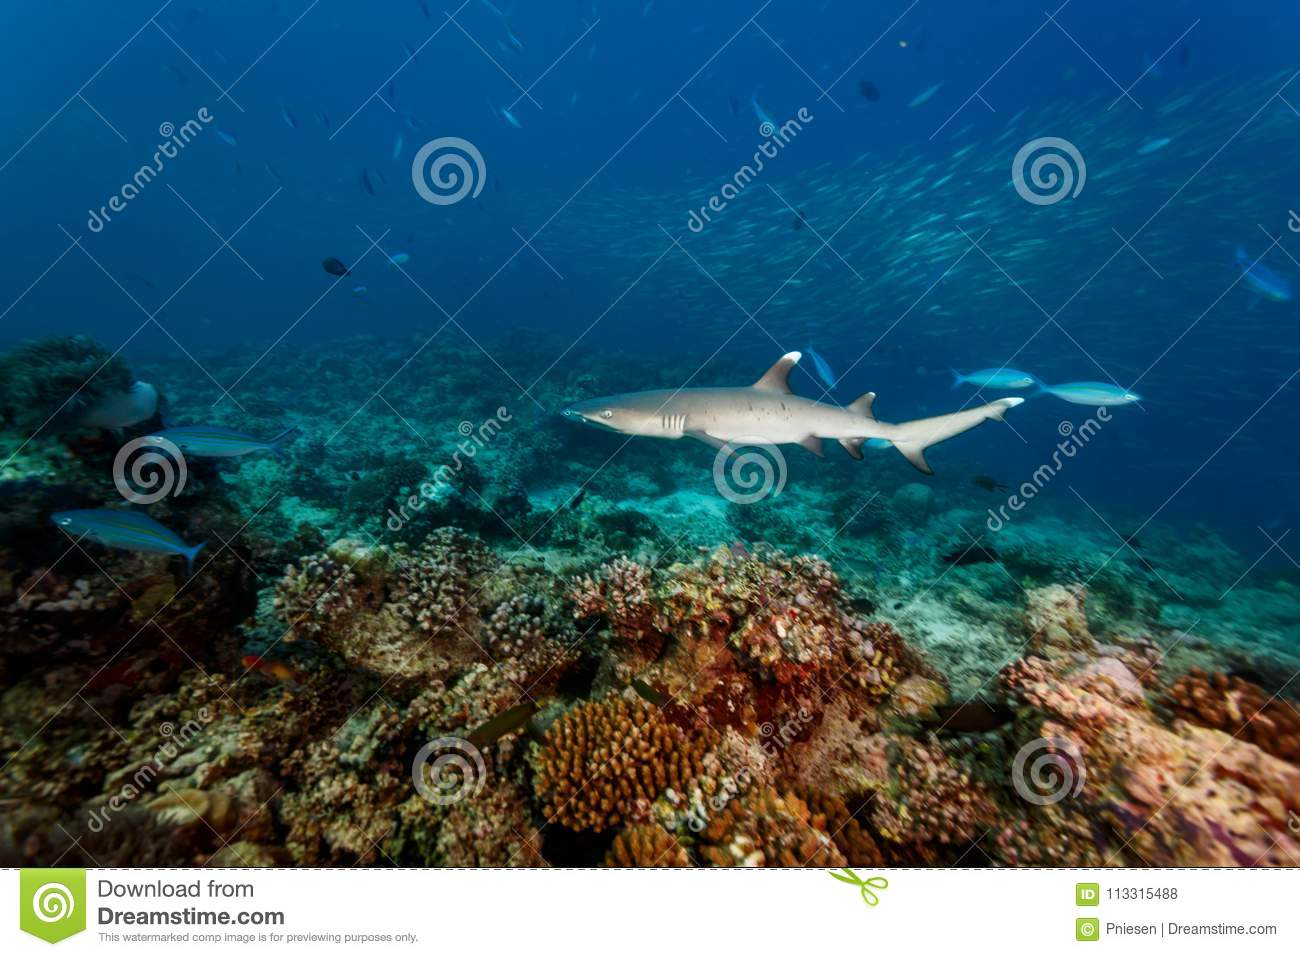 White tip reef shark, Triaenodon obesus, swims over hard coral on reef closeup